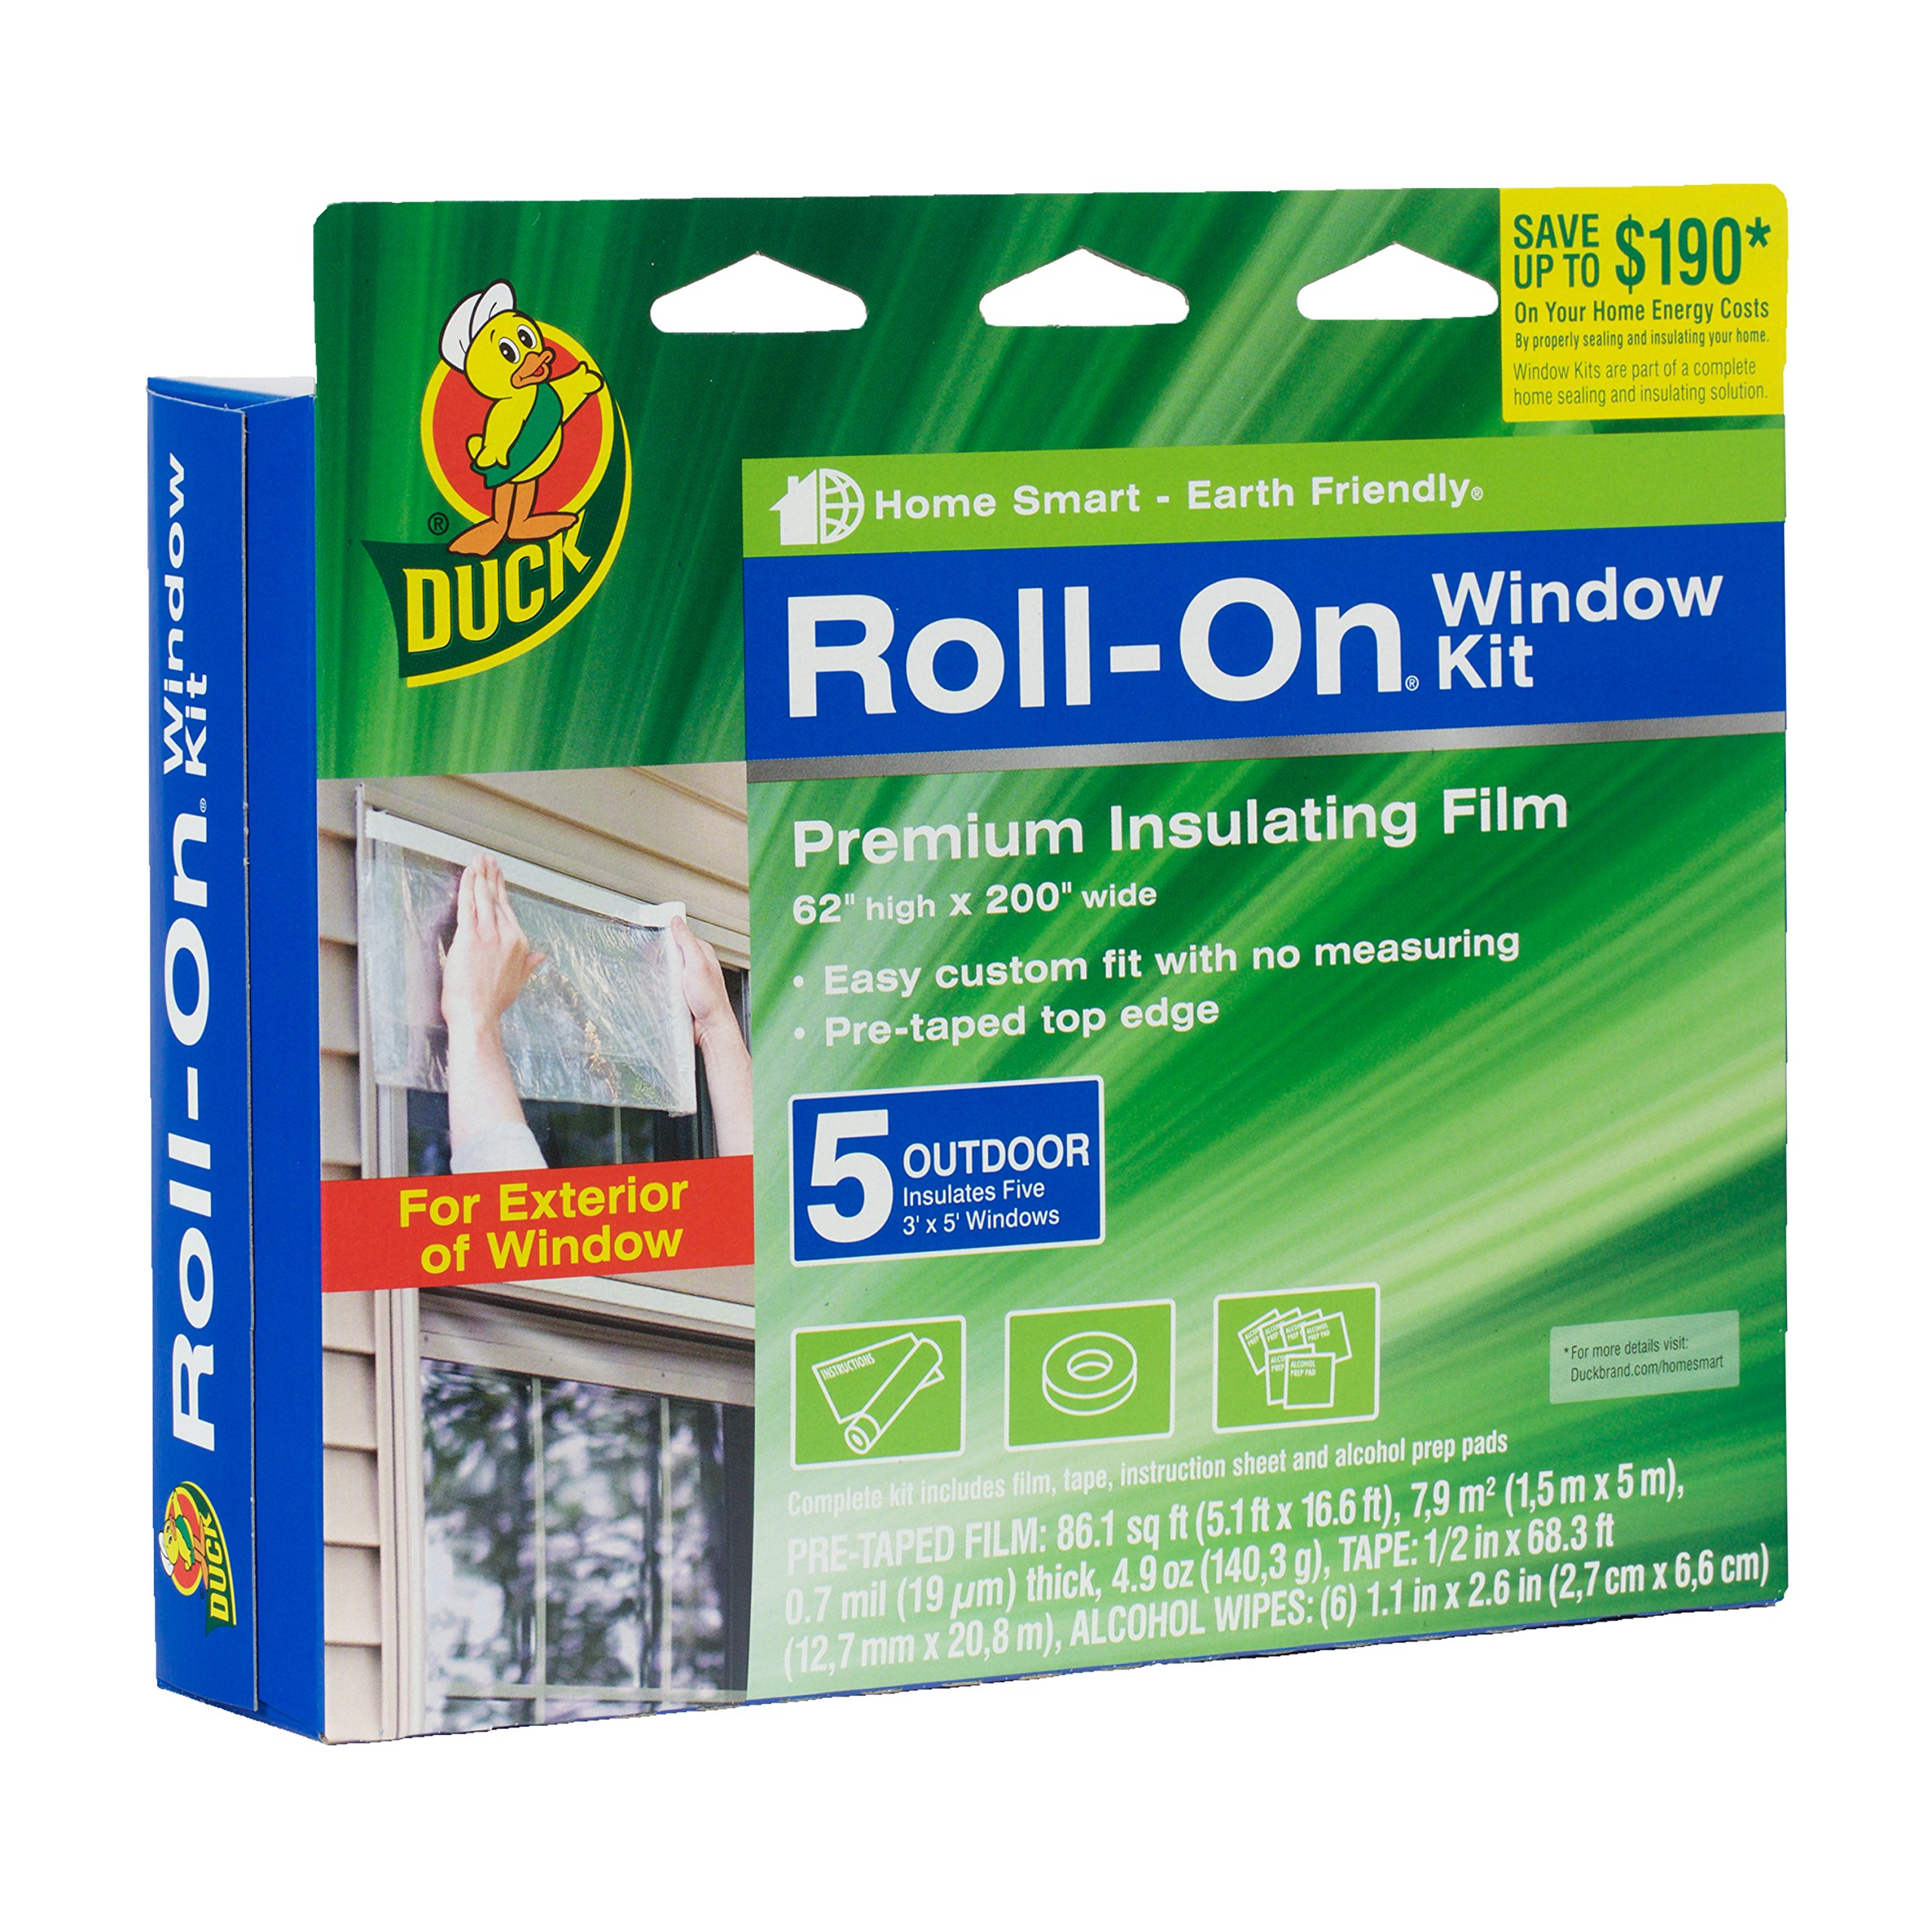 Duck Brand Roll-On Outdoor 5-Window Premium Insulating Film Kit, 62-Inch x 200-Inch, 281072 by Duck